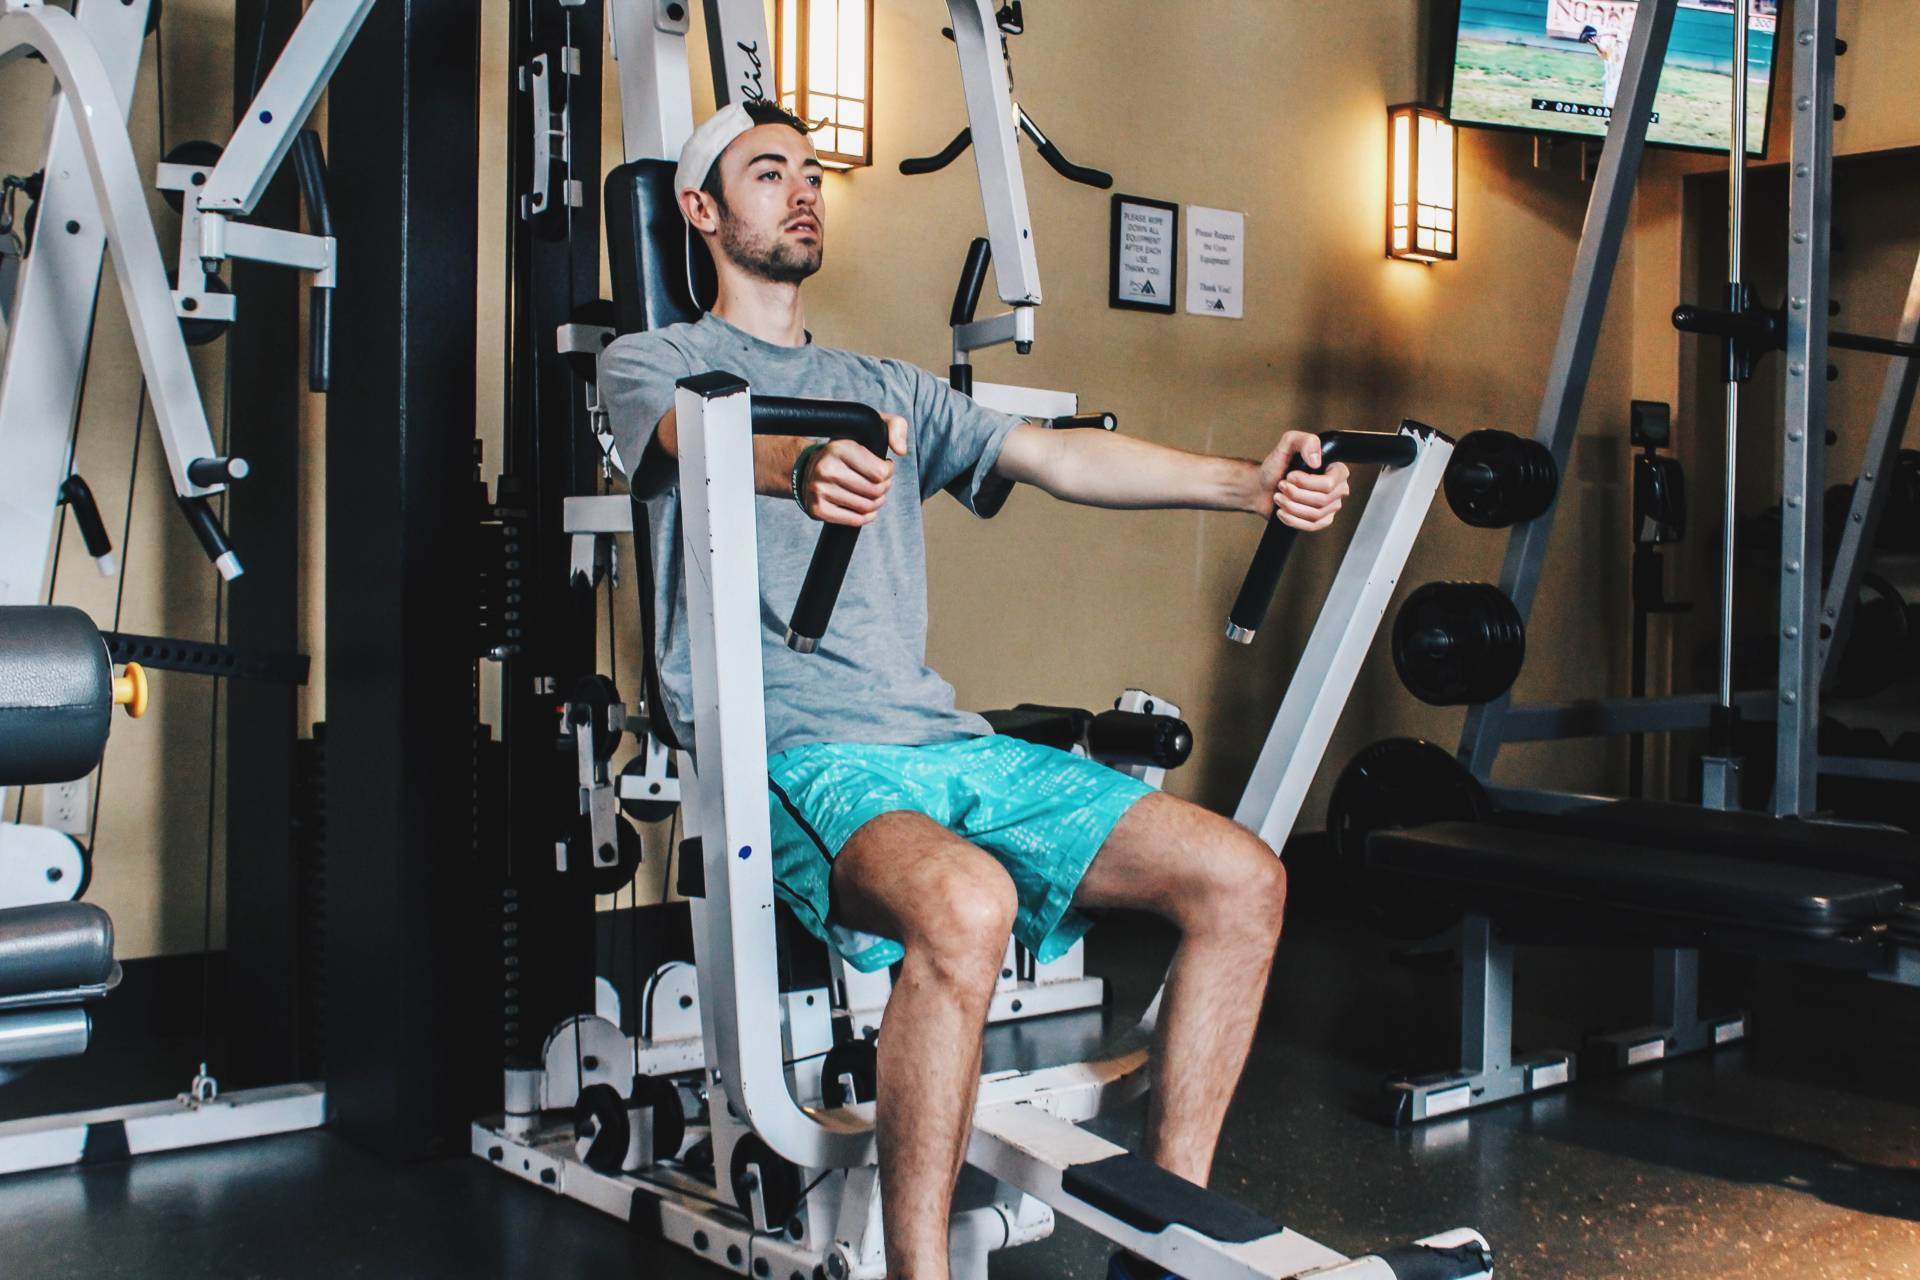 alex working out